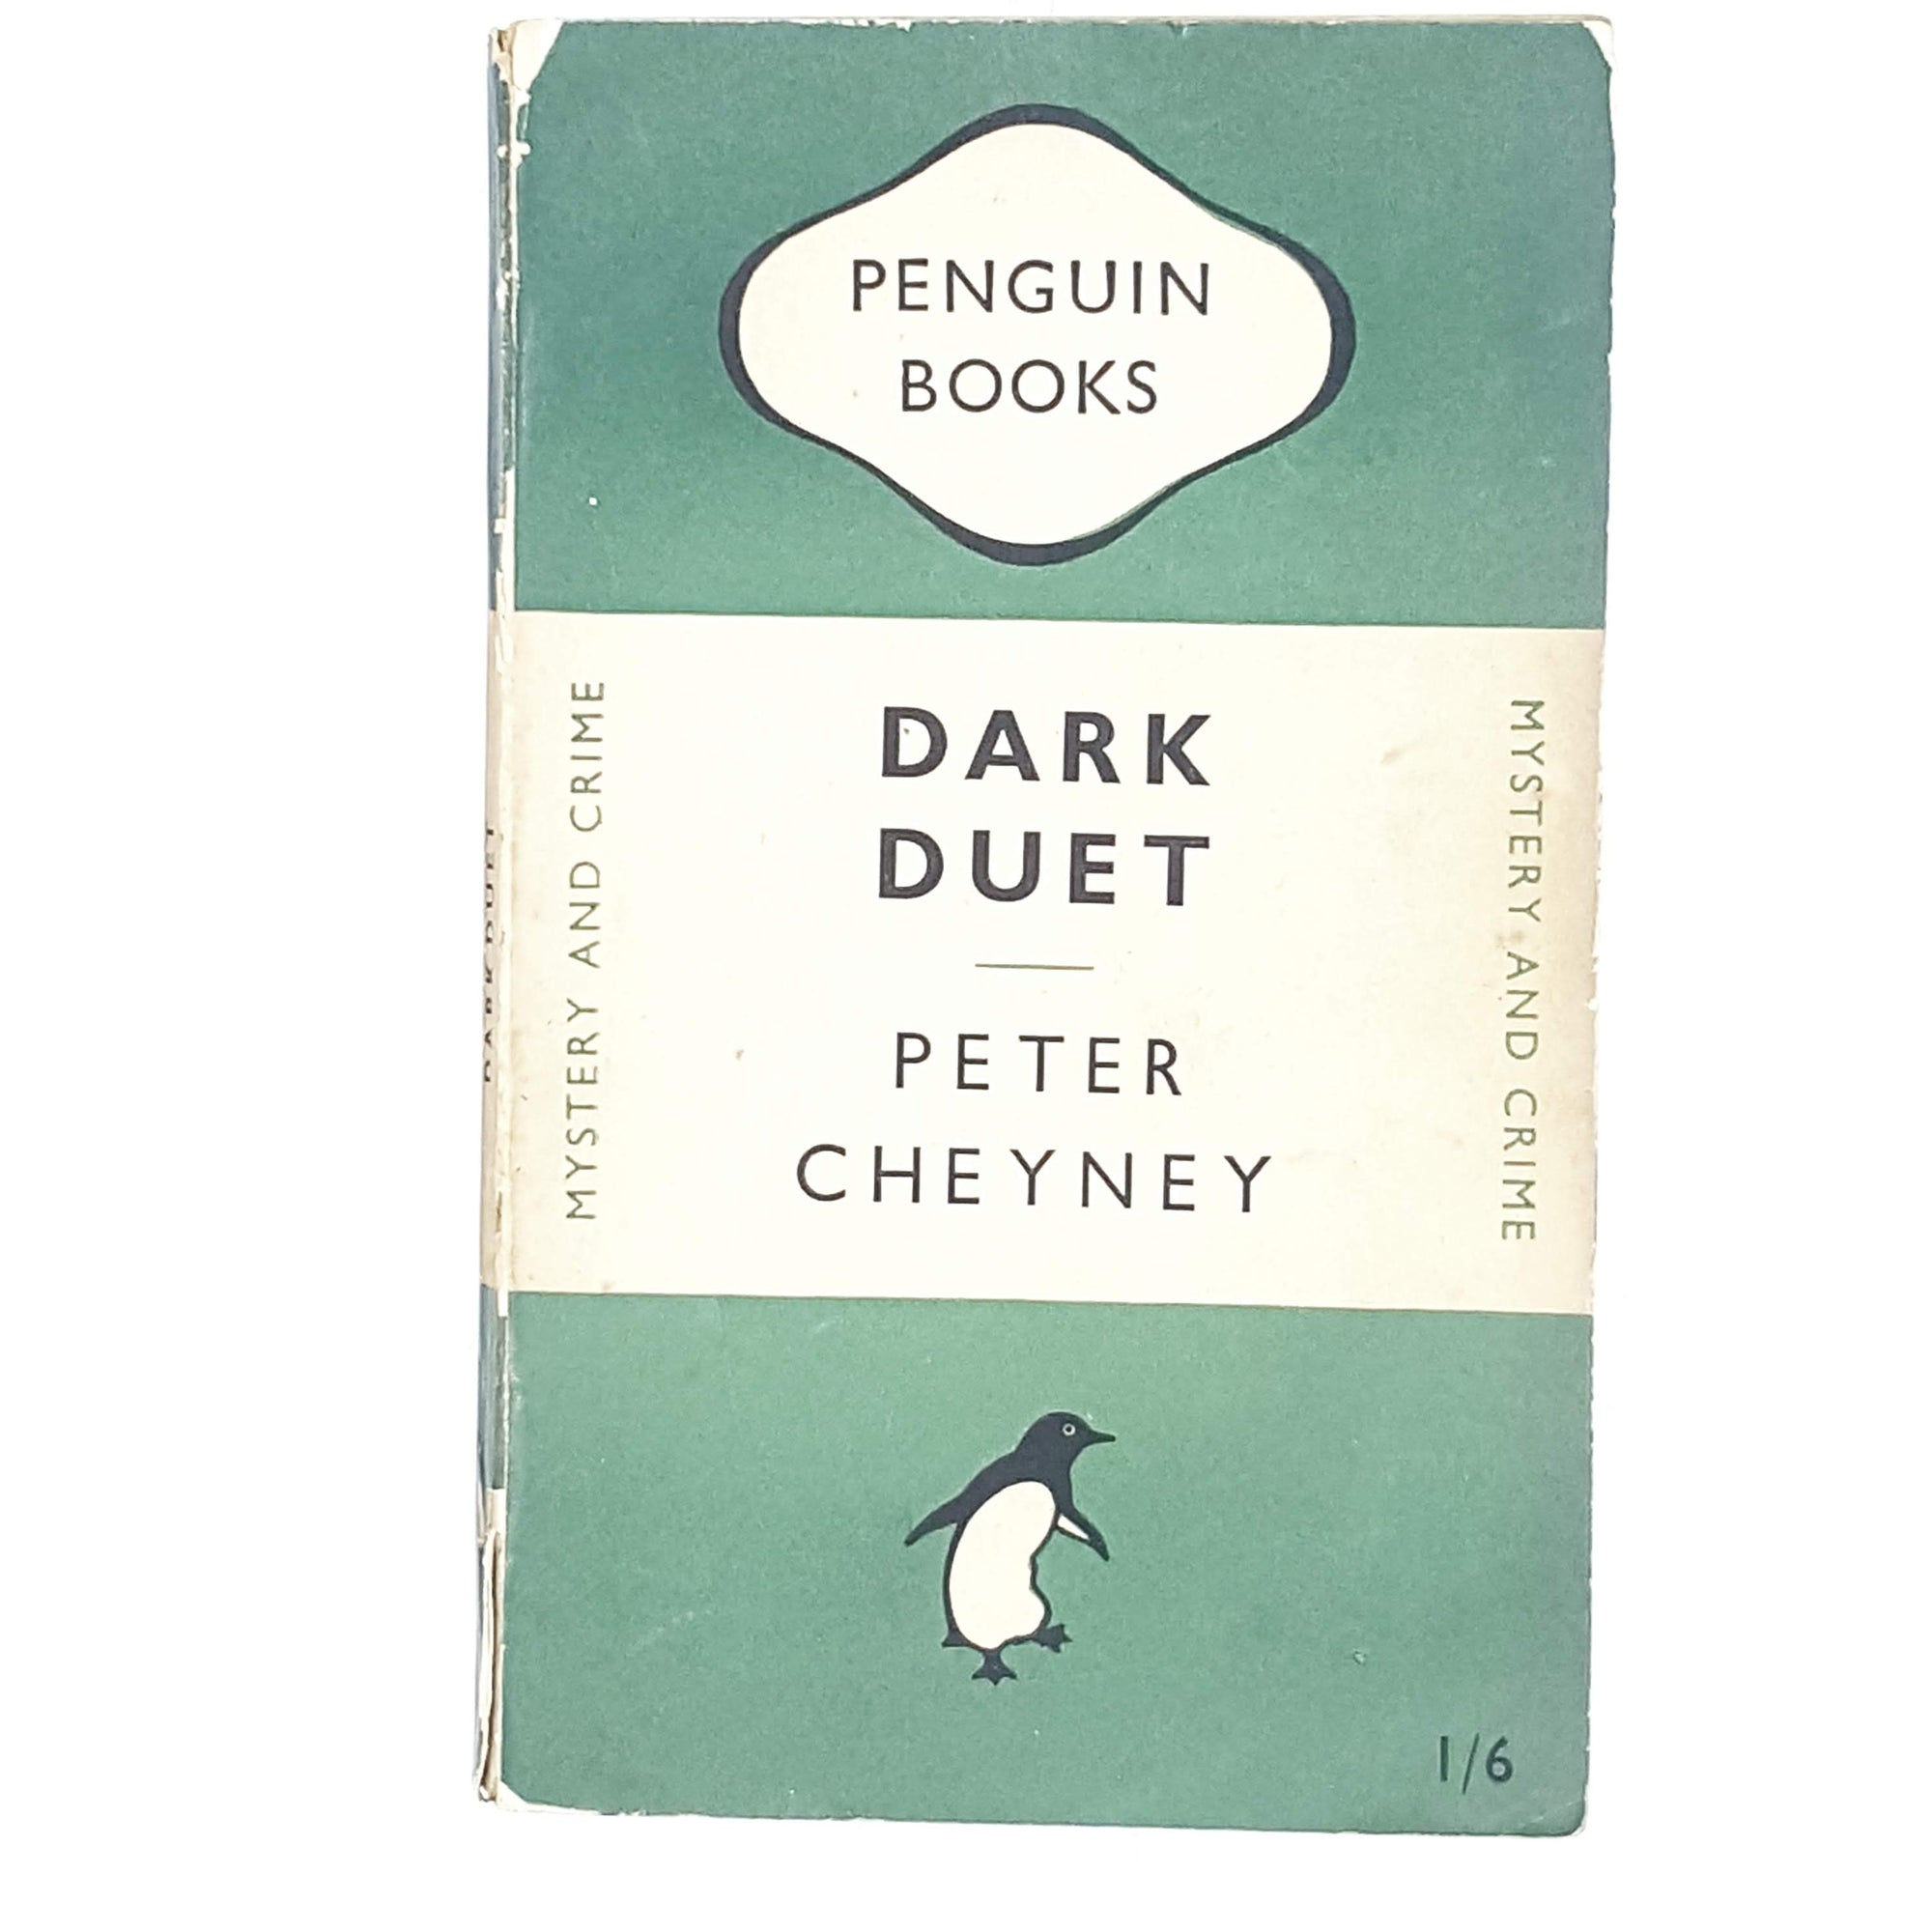 First Edition Penguin Dark Duet by Peter Cheyney 1949